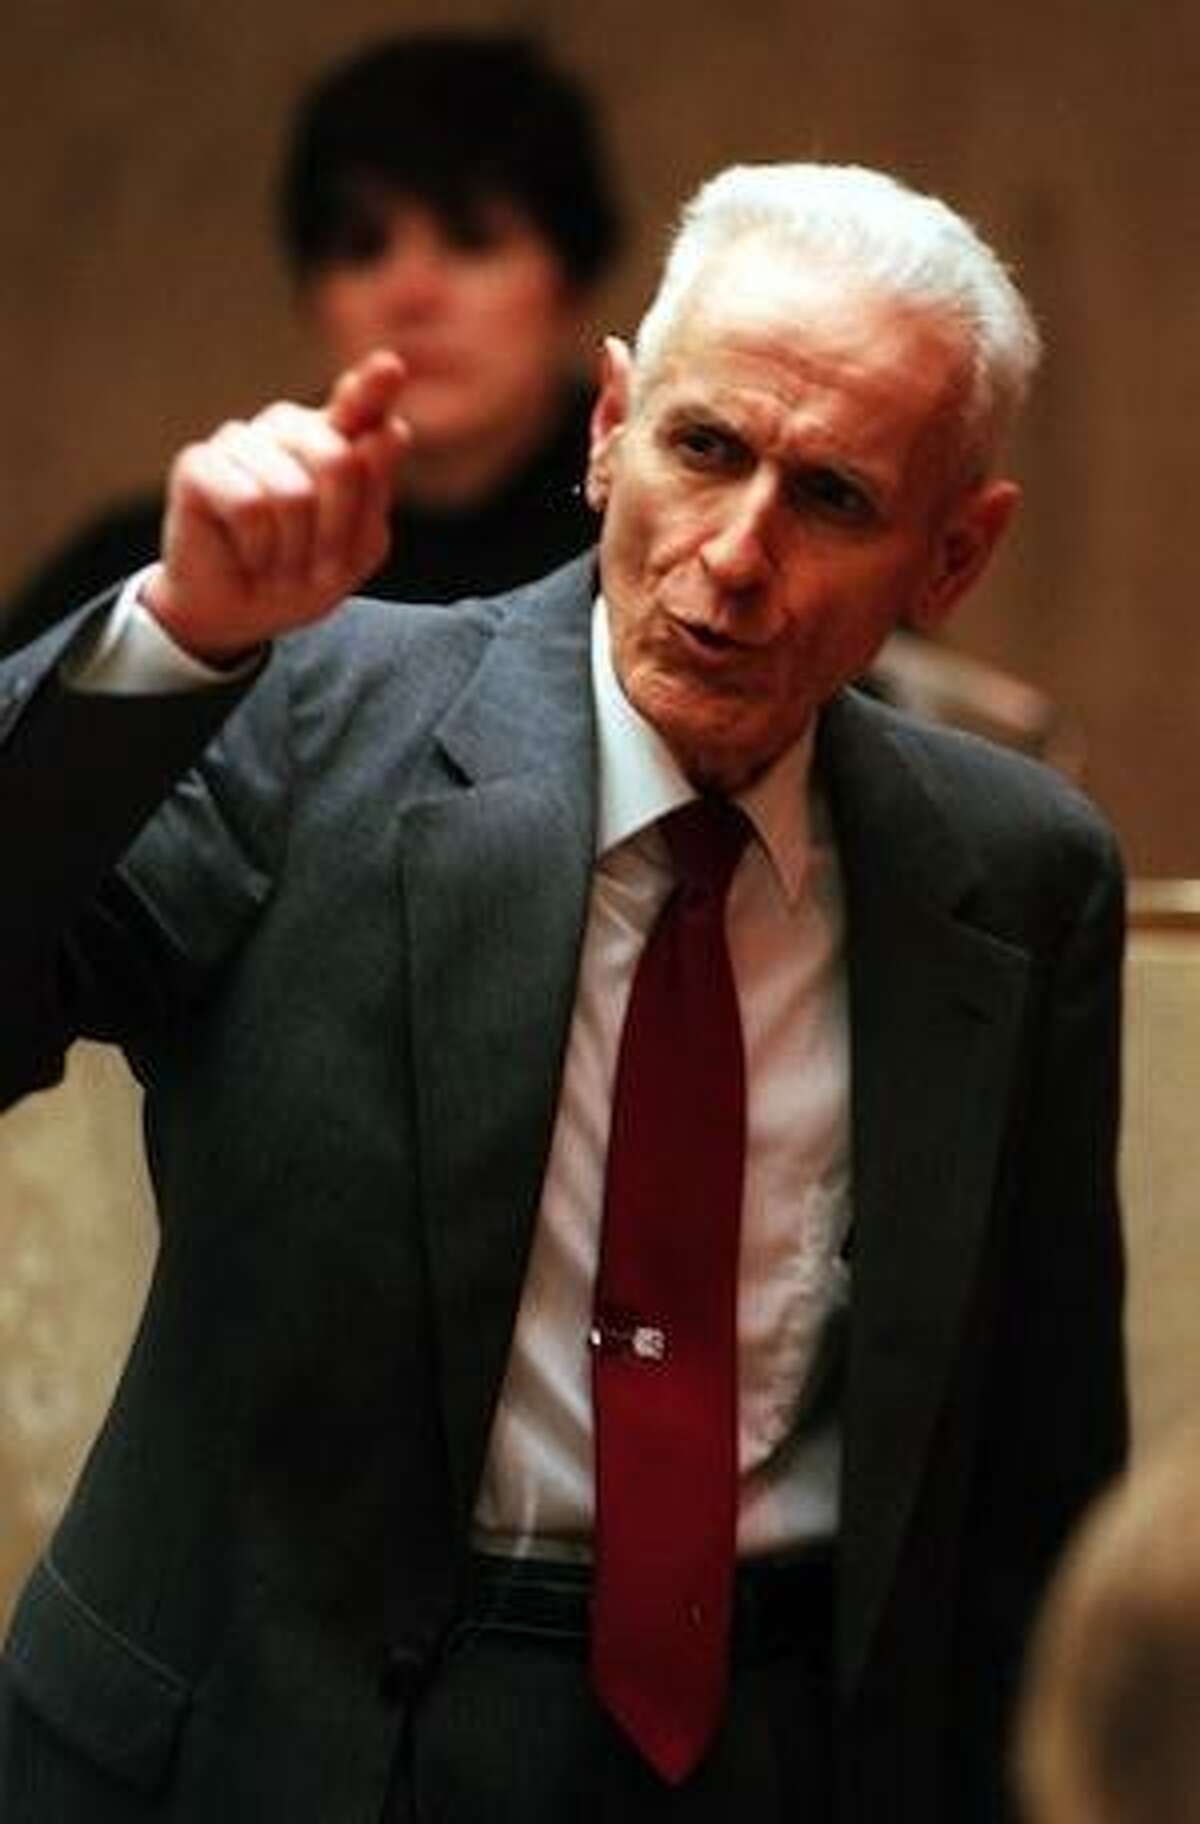 Doctor Jack Kevorkian gives his closing arguments to the jurors before Oakland County Circuit Judge Jessica Cooper. Kevorkian is charged with first-degree murder for the lethal injection death of Thomas Youk.